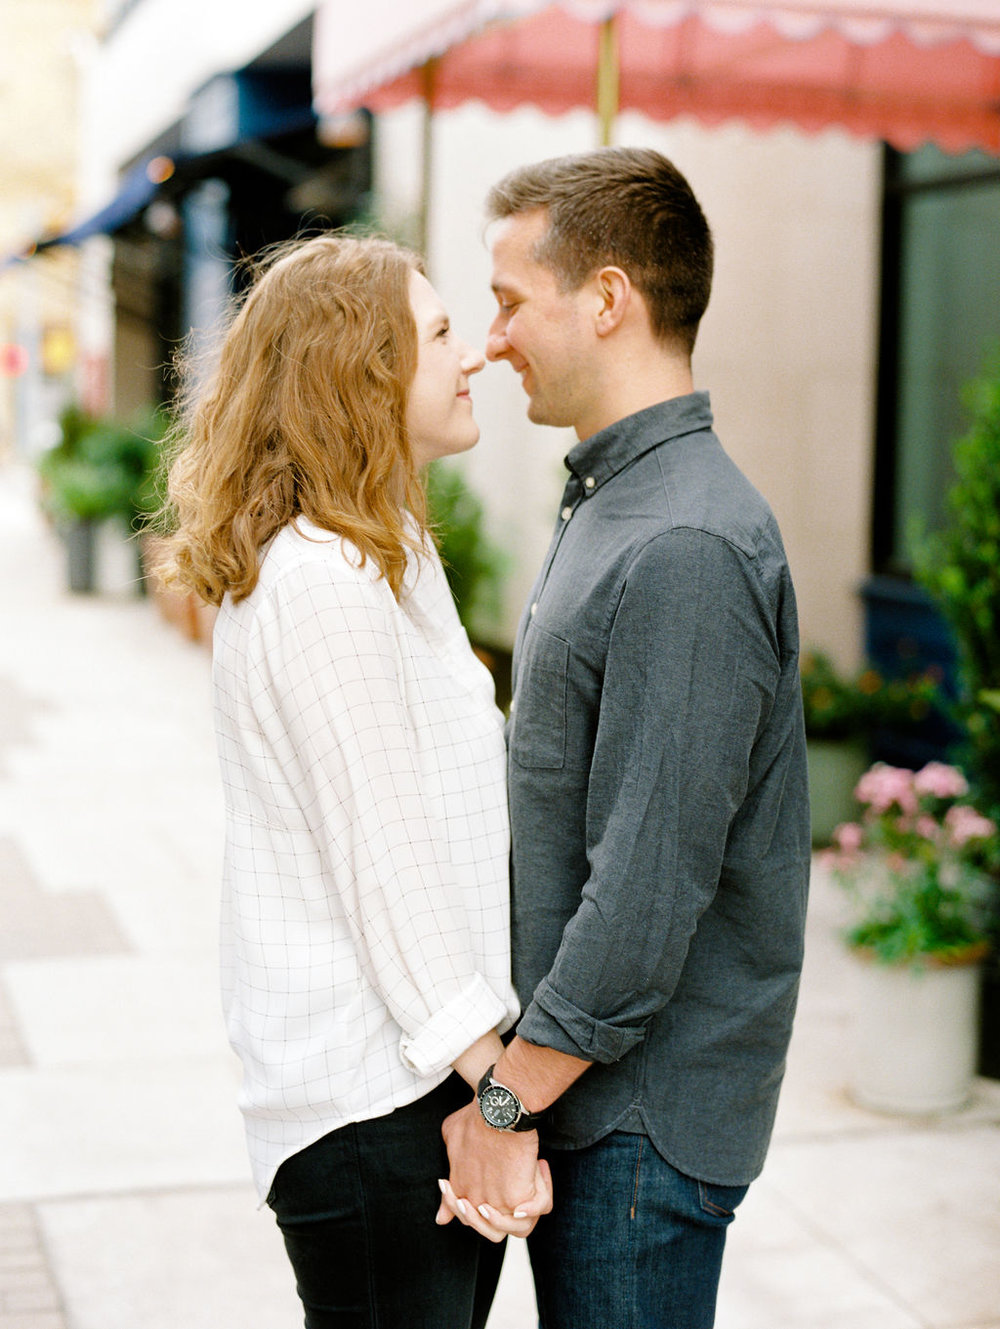 Austin-Texas-Wedding-Engagement-Photographer-Downtown-Sealhold-District-7.jpg